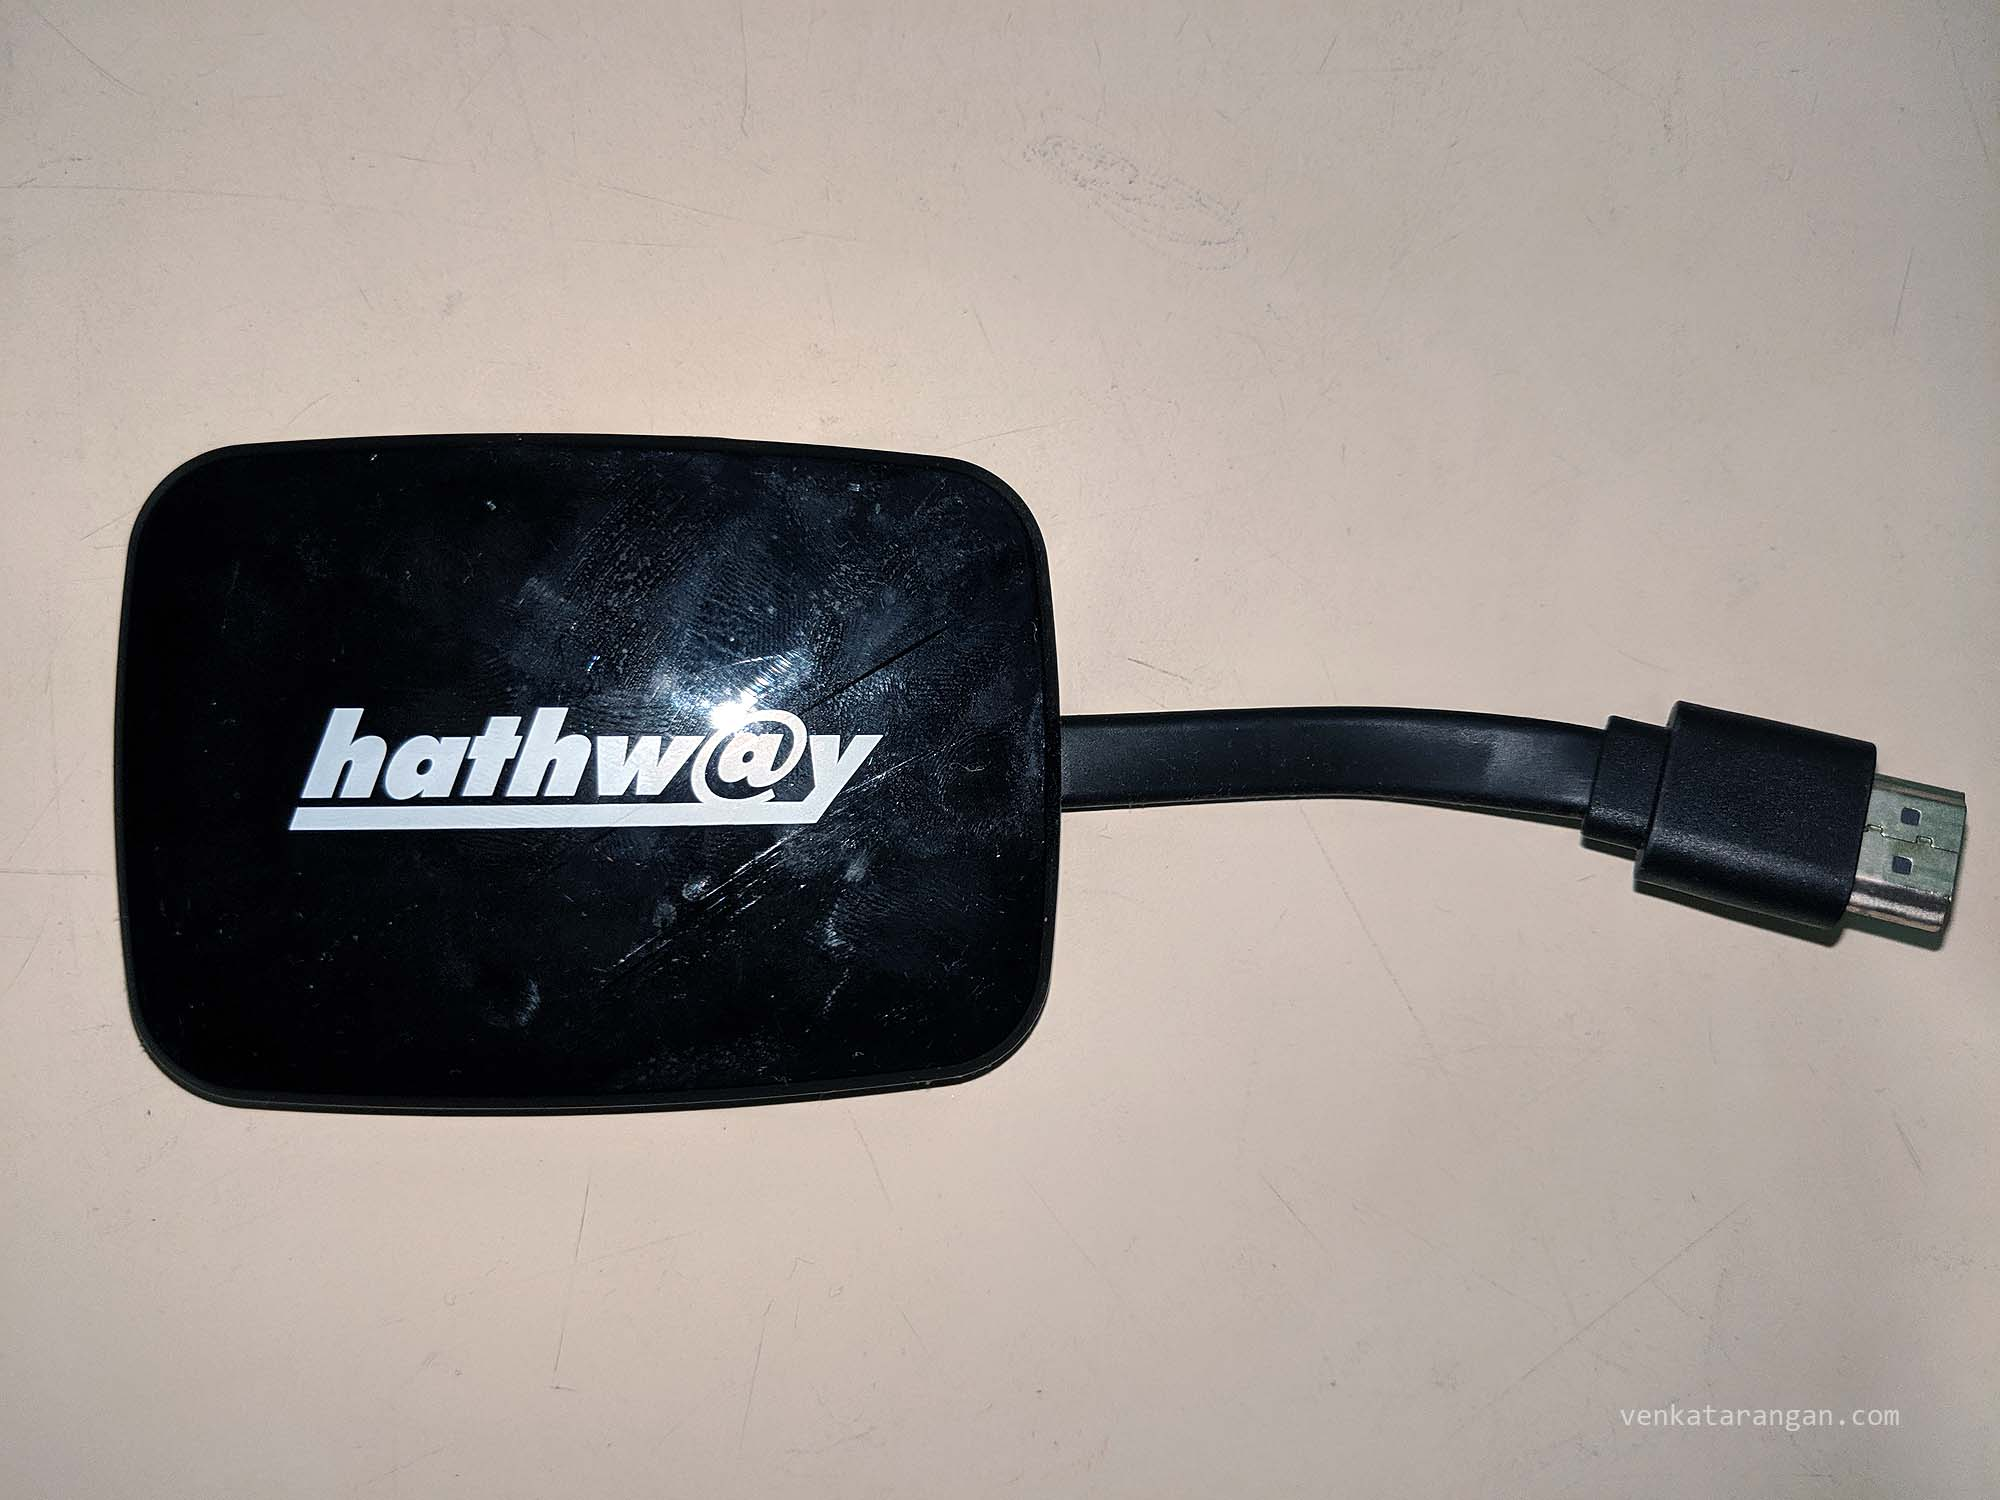 Hathway Broadband Play Box - Android TV